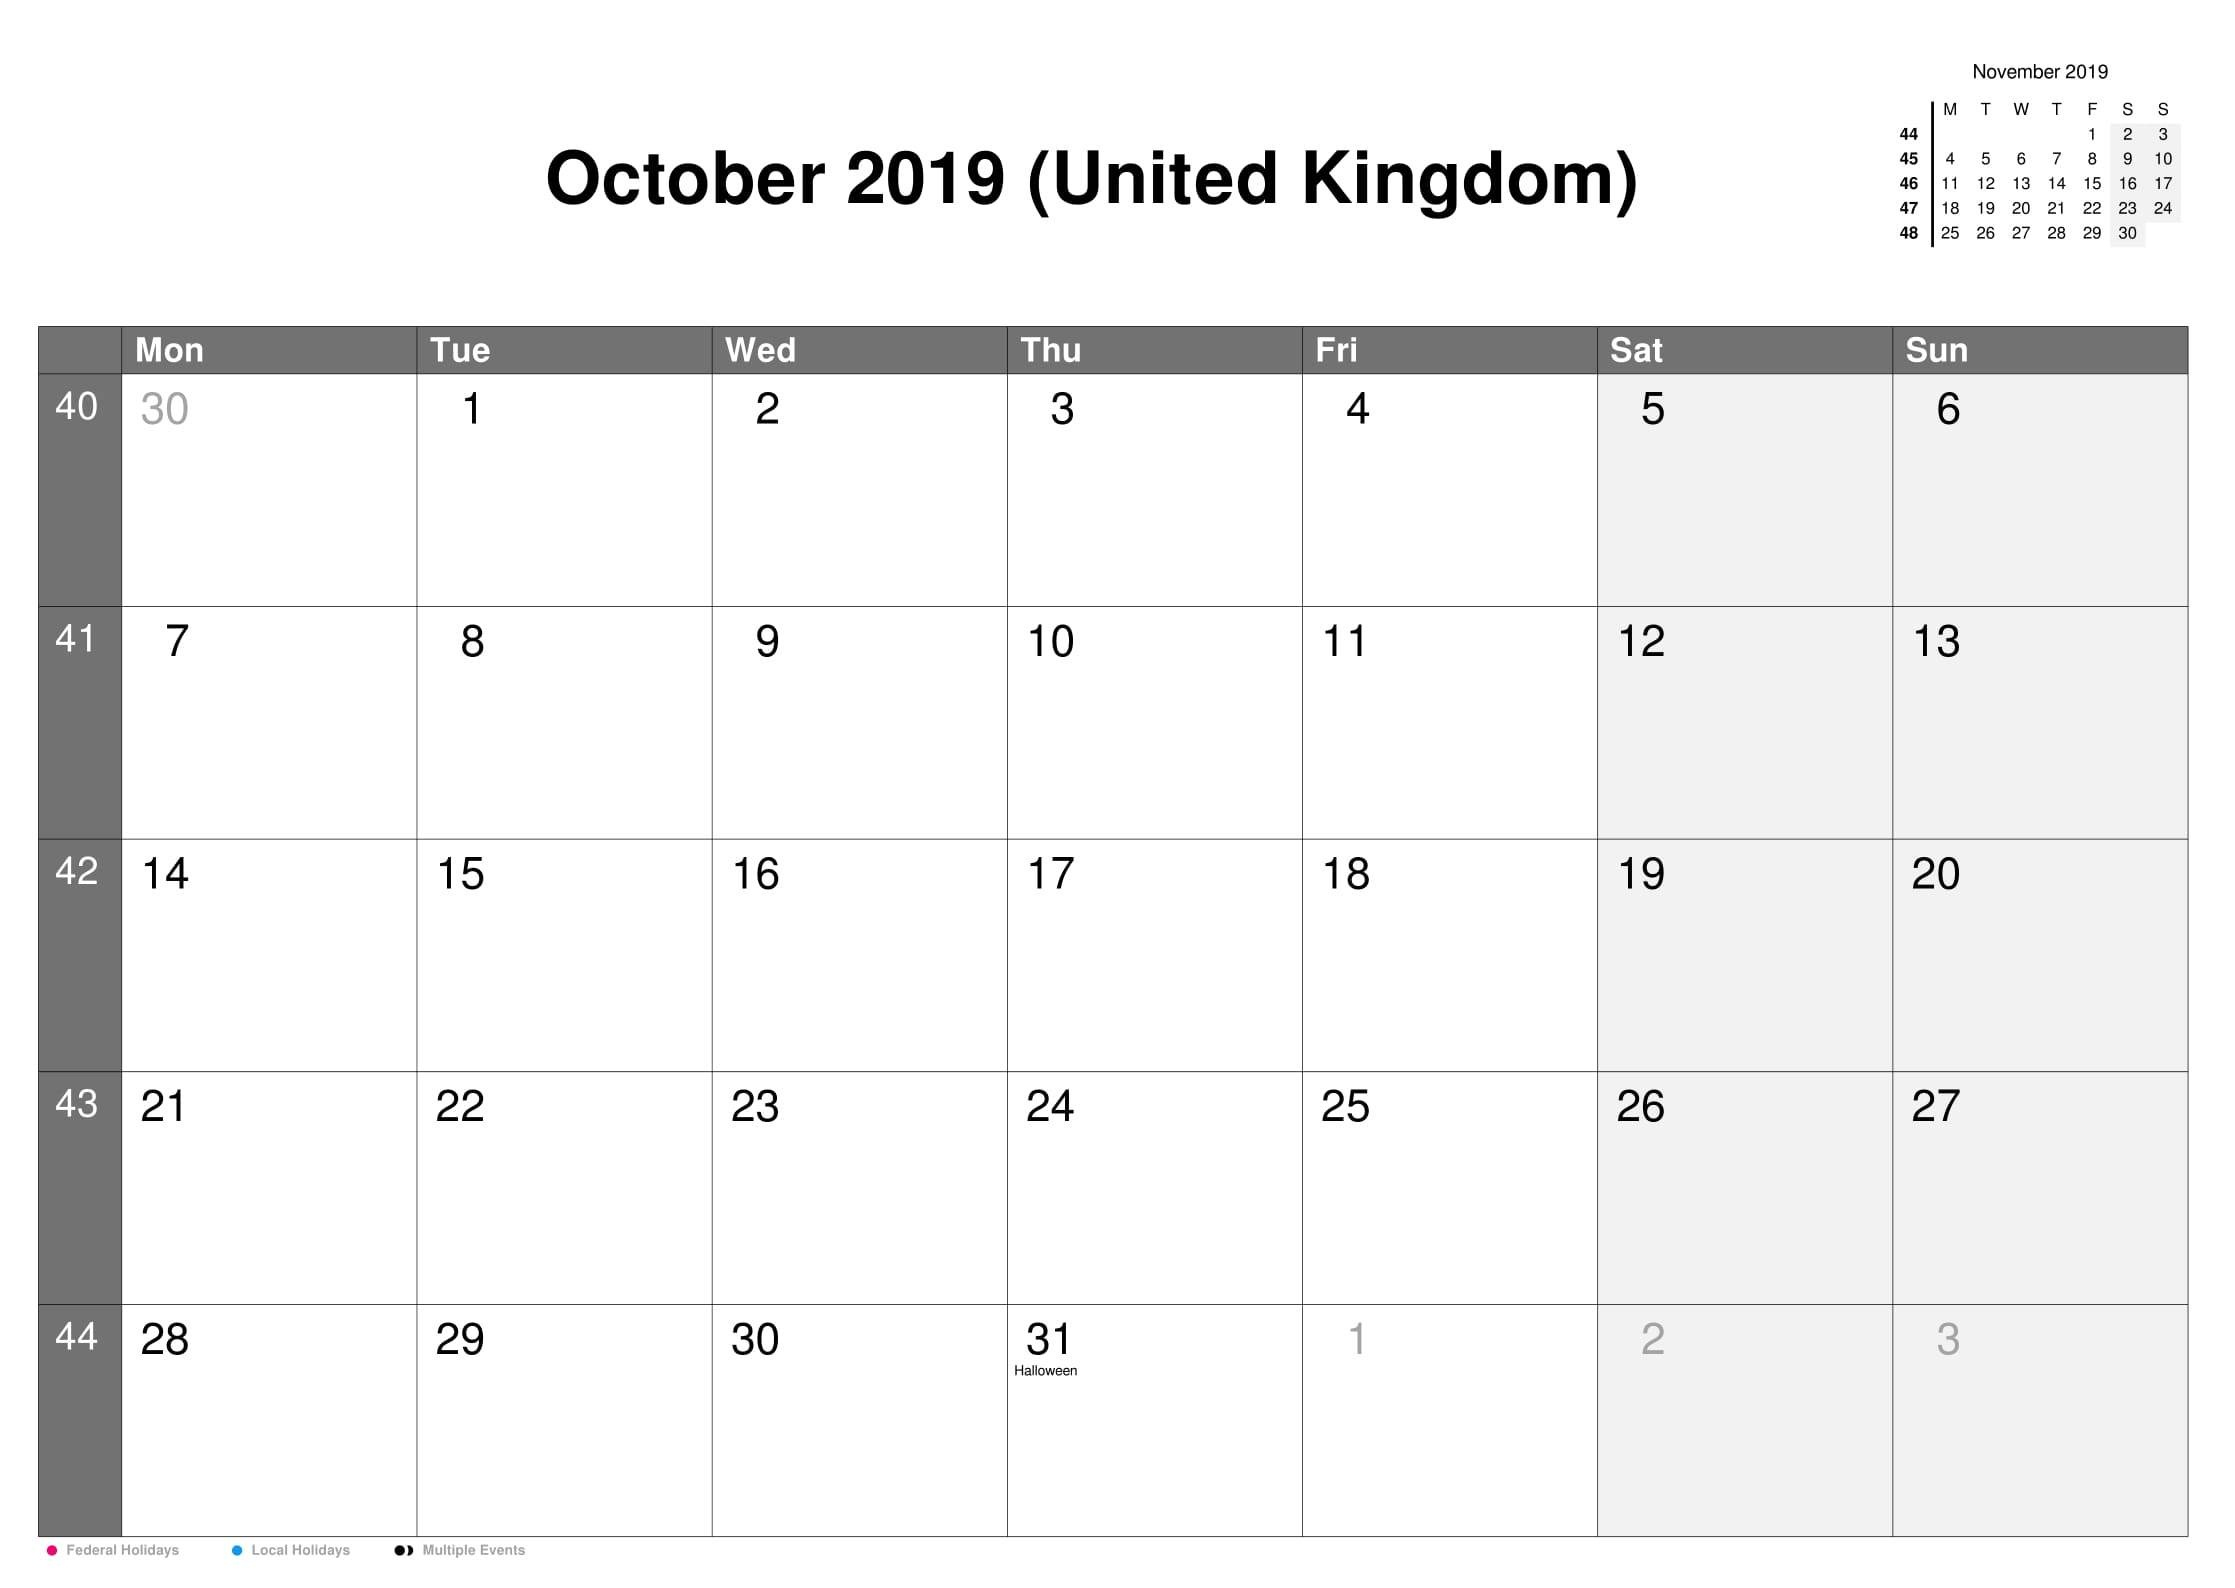 October 2019 Calendar With UK Holidays